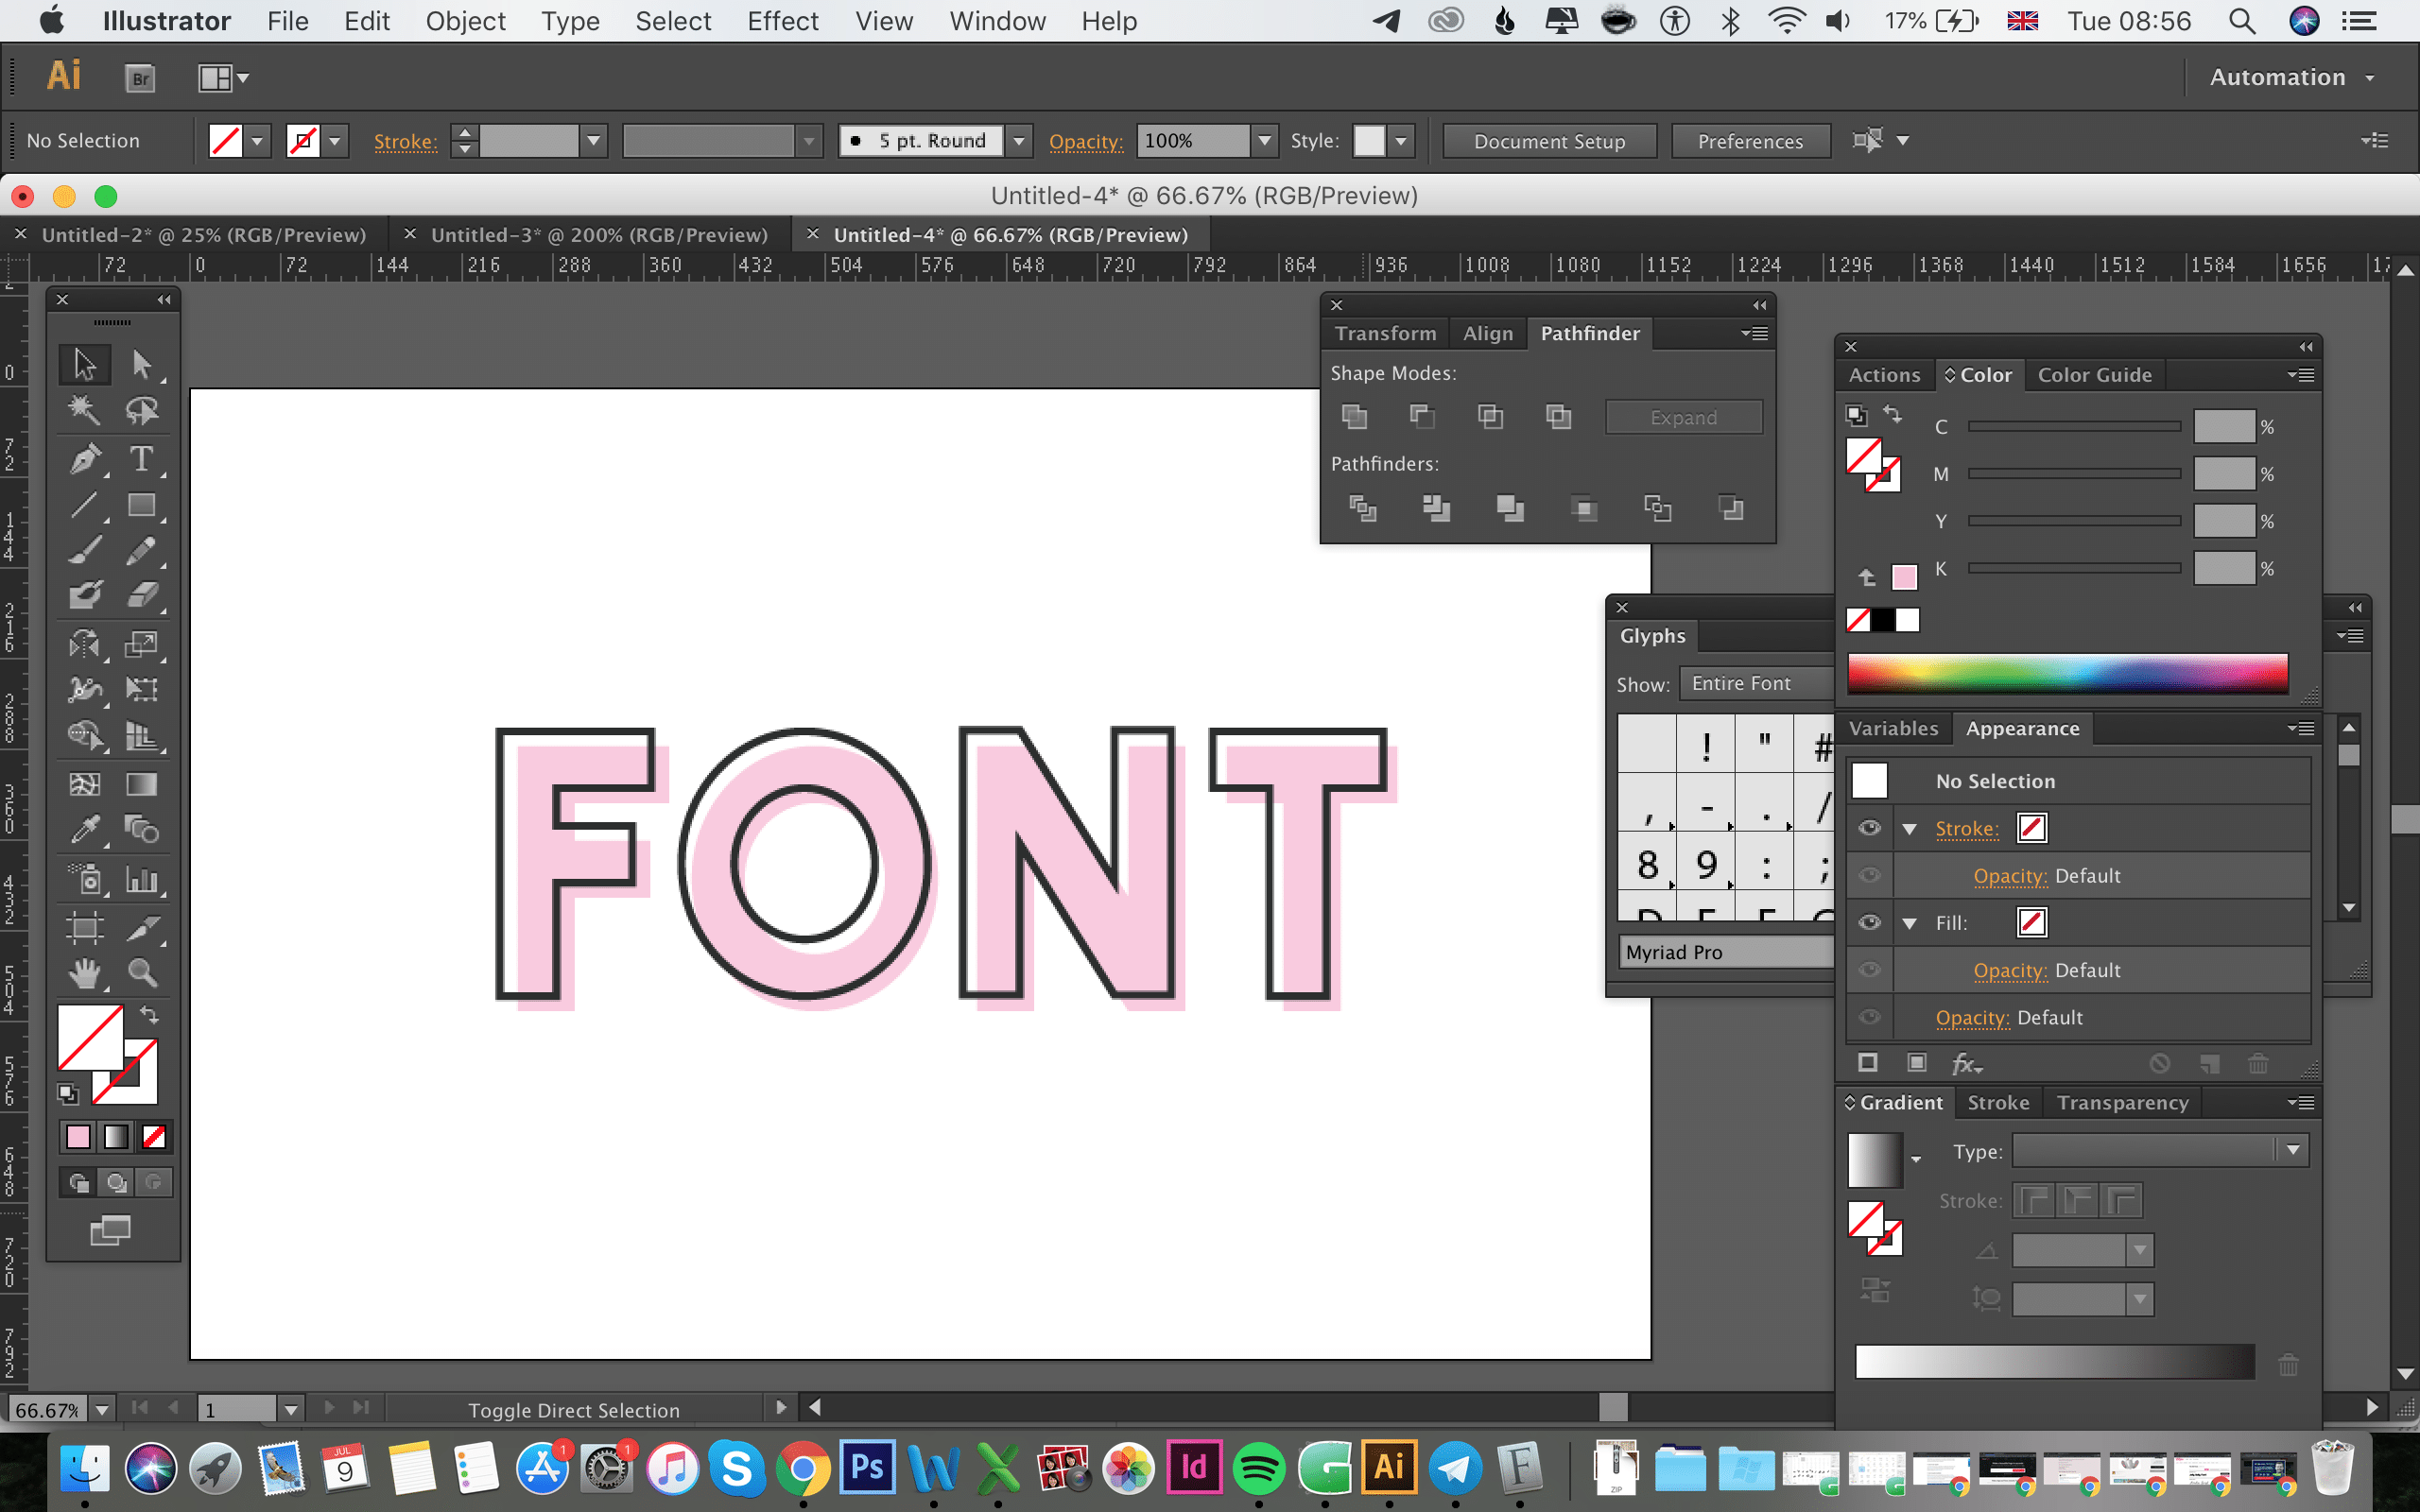 Our completed design showing both font's